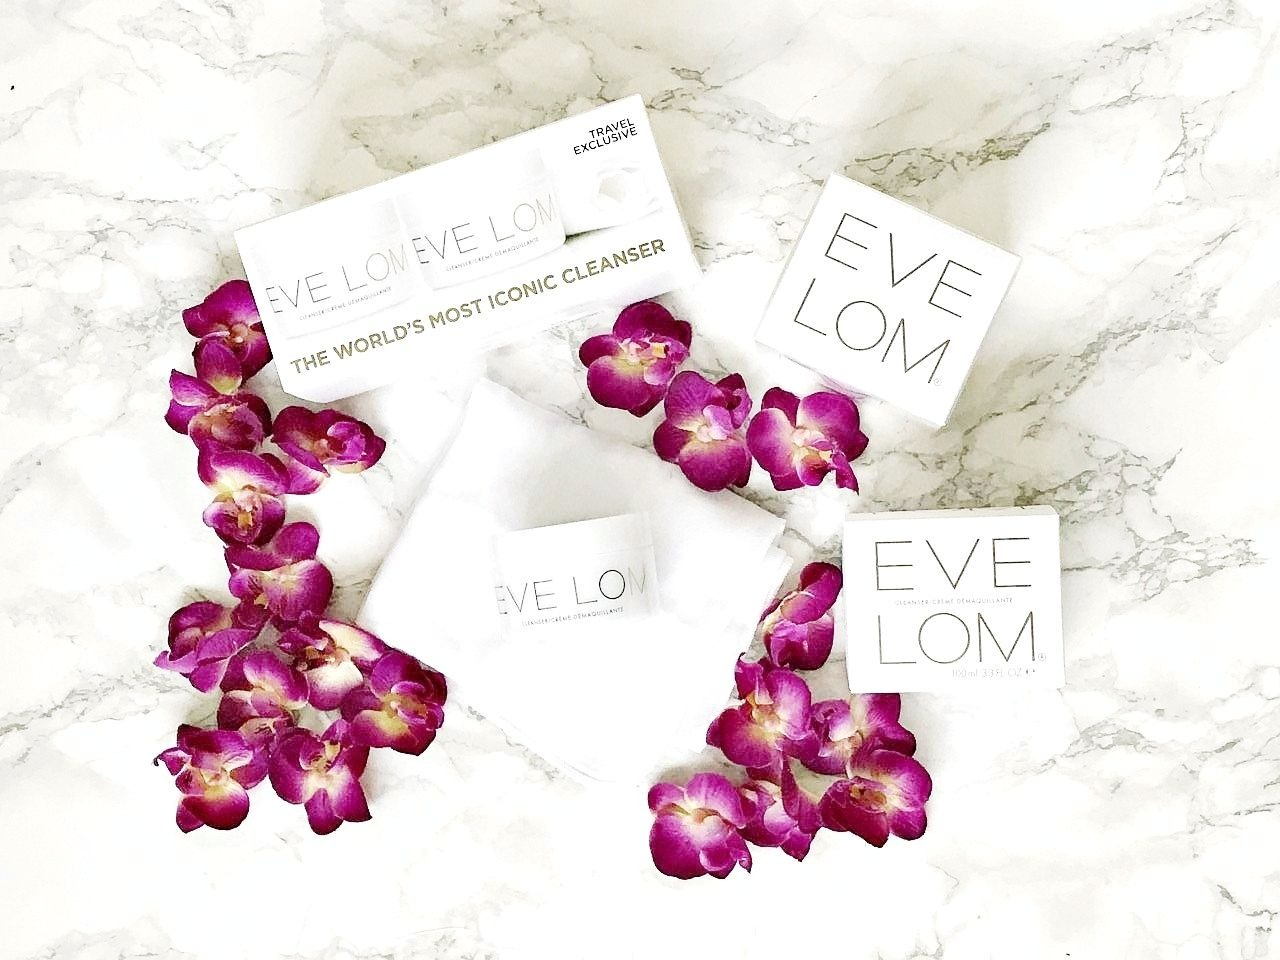 how to use eve lom cleansing balm